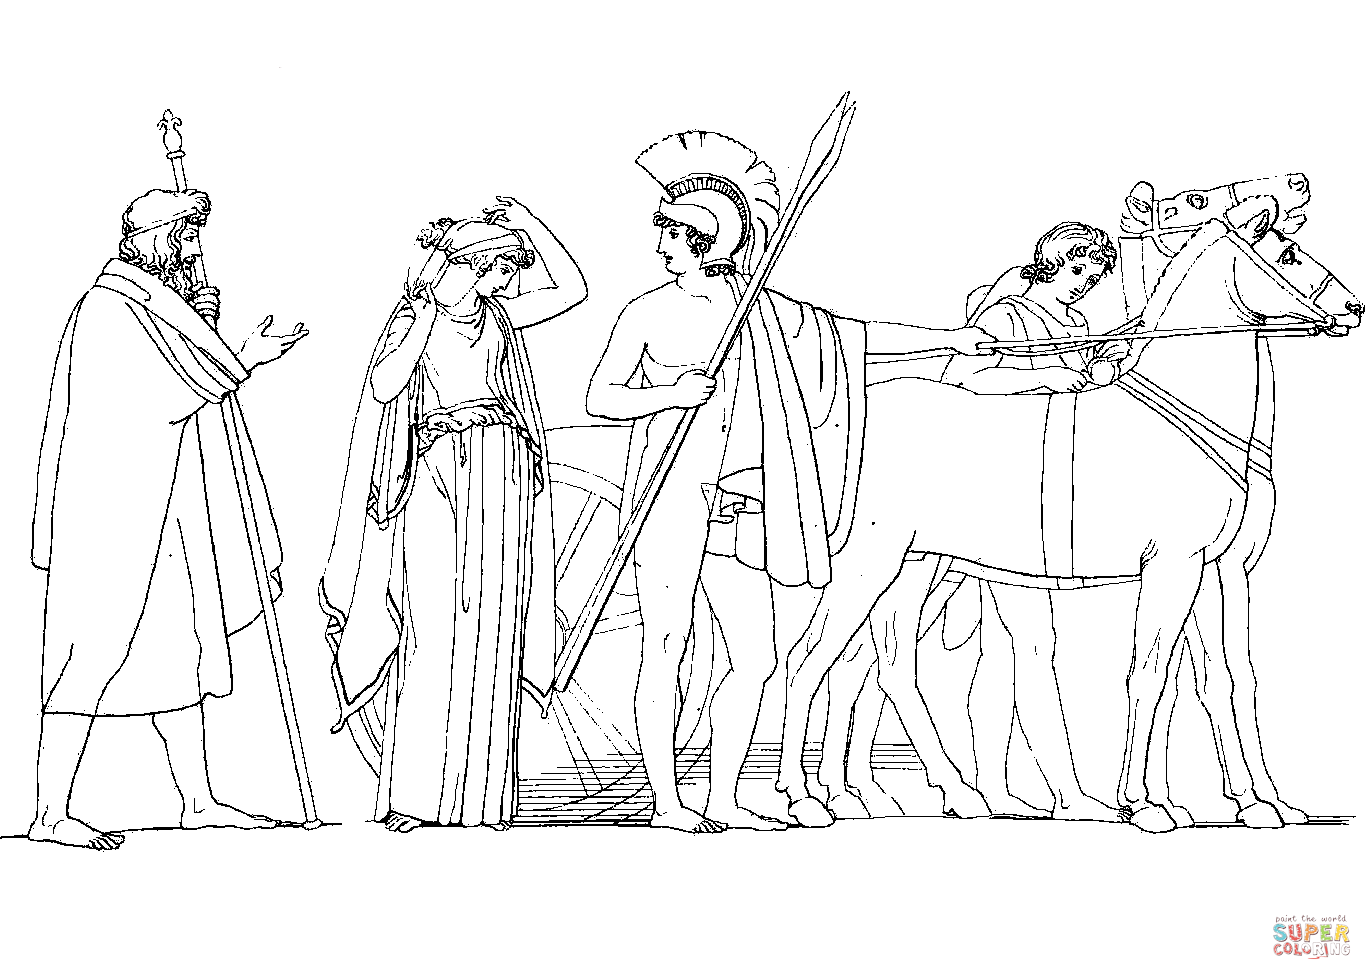 Odysseus Departing from Lacedaemon for Ithaca with His